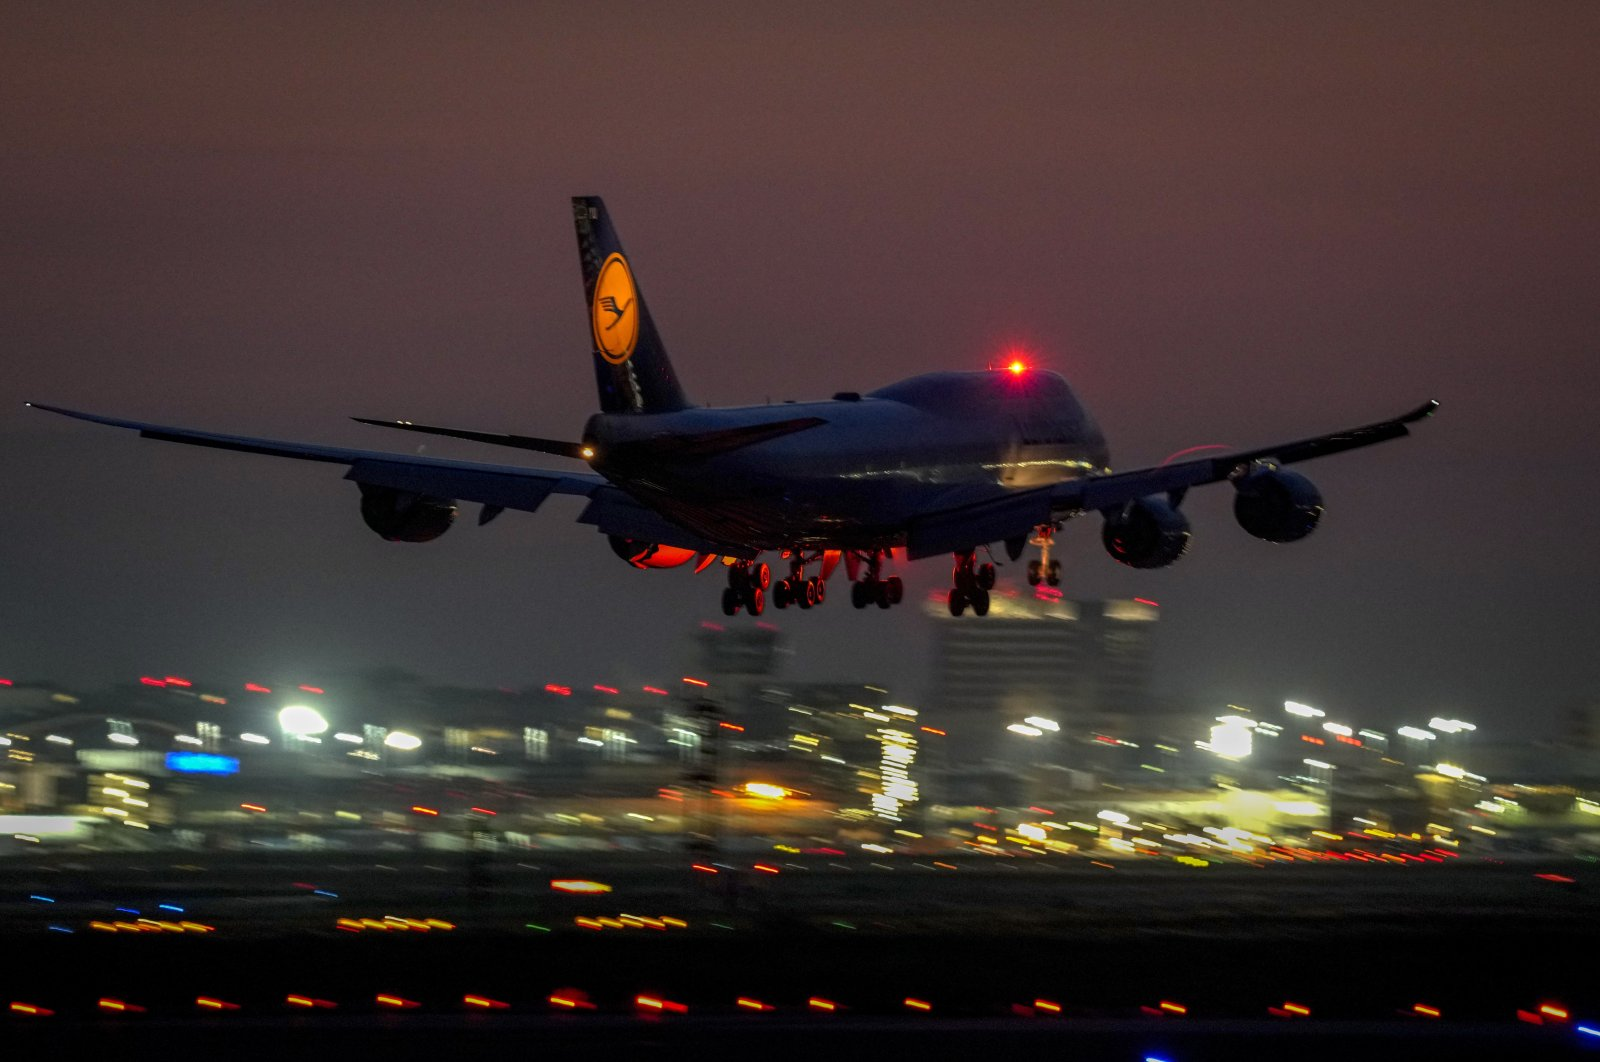 A Lufthansa Boeing 747 aircraft approaches the international airport in Frankfurt, Germany, Aug. 13, 2021. (AP Photo)